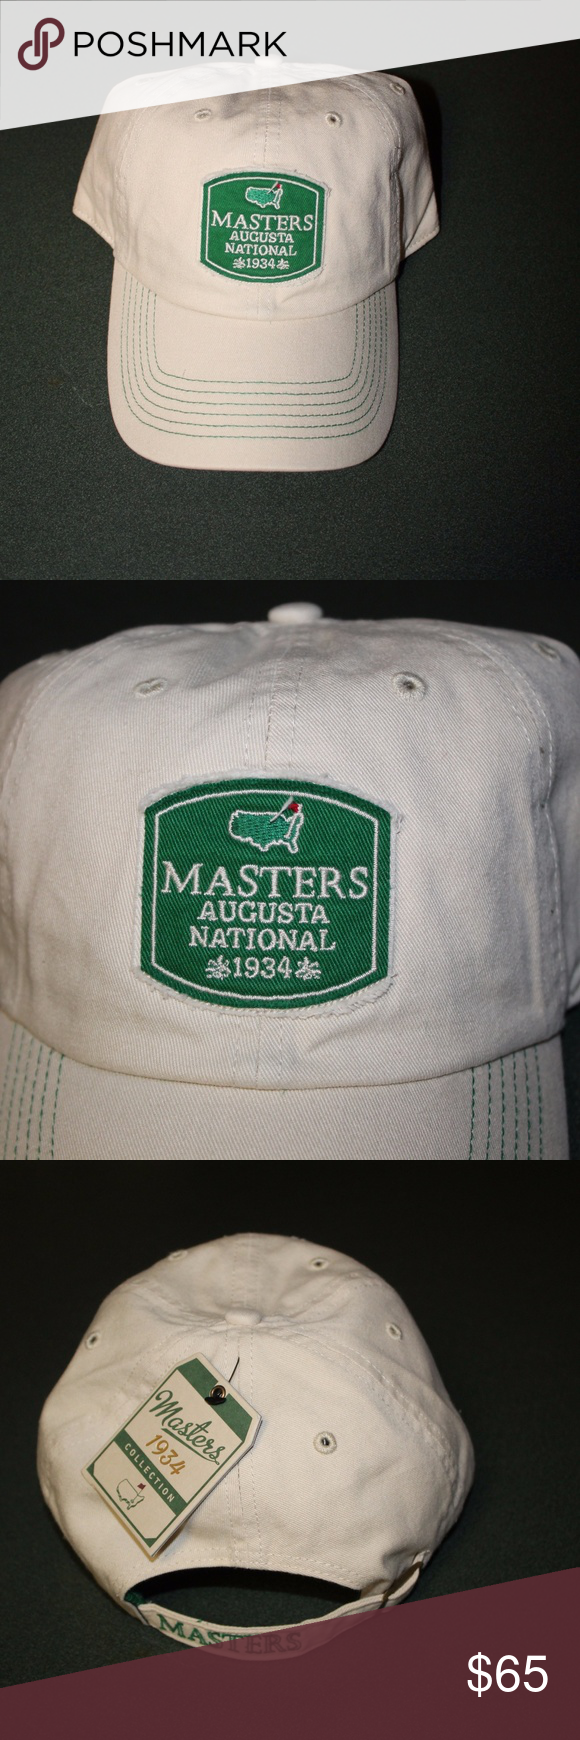 c5366e4c9bd68 Masters Golf Hat 1934 Collection American Needle Brand  American Needle  Item  Masters Golf Hat